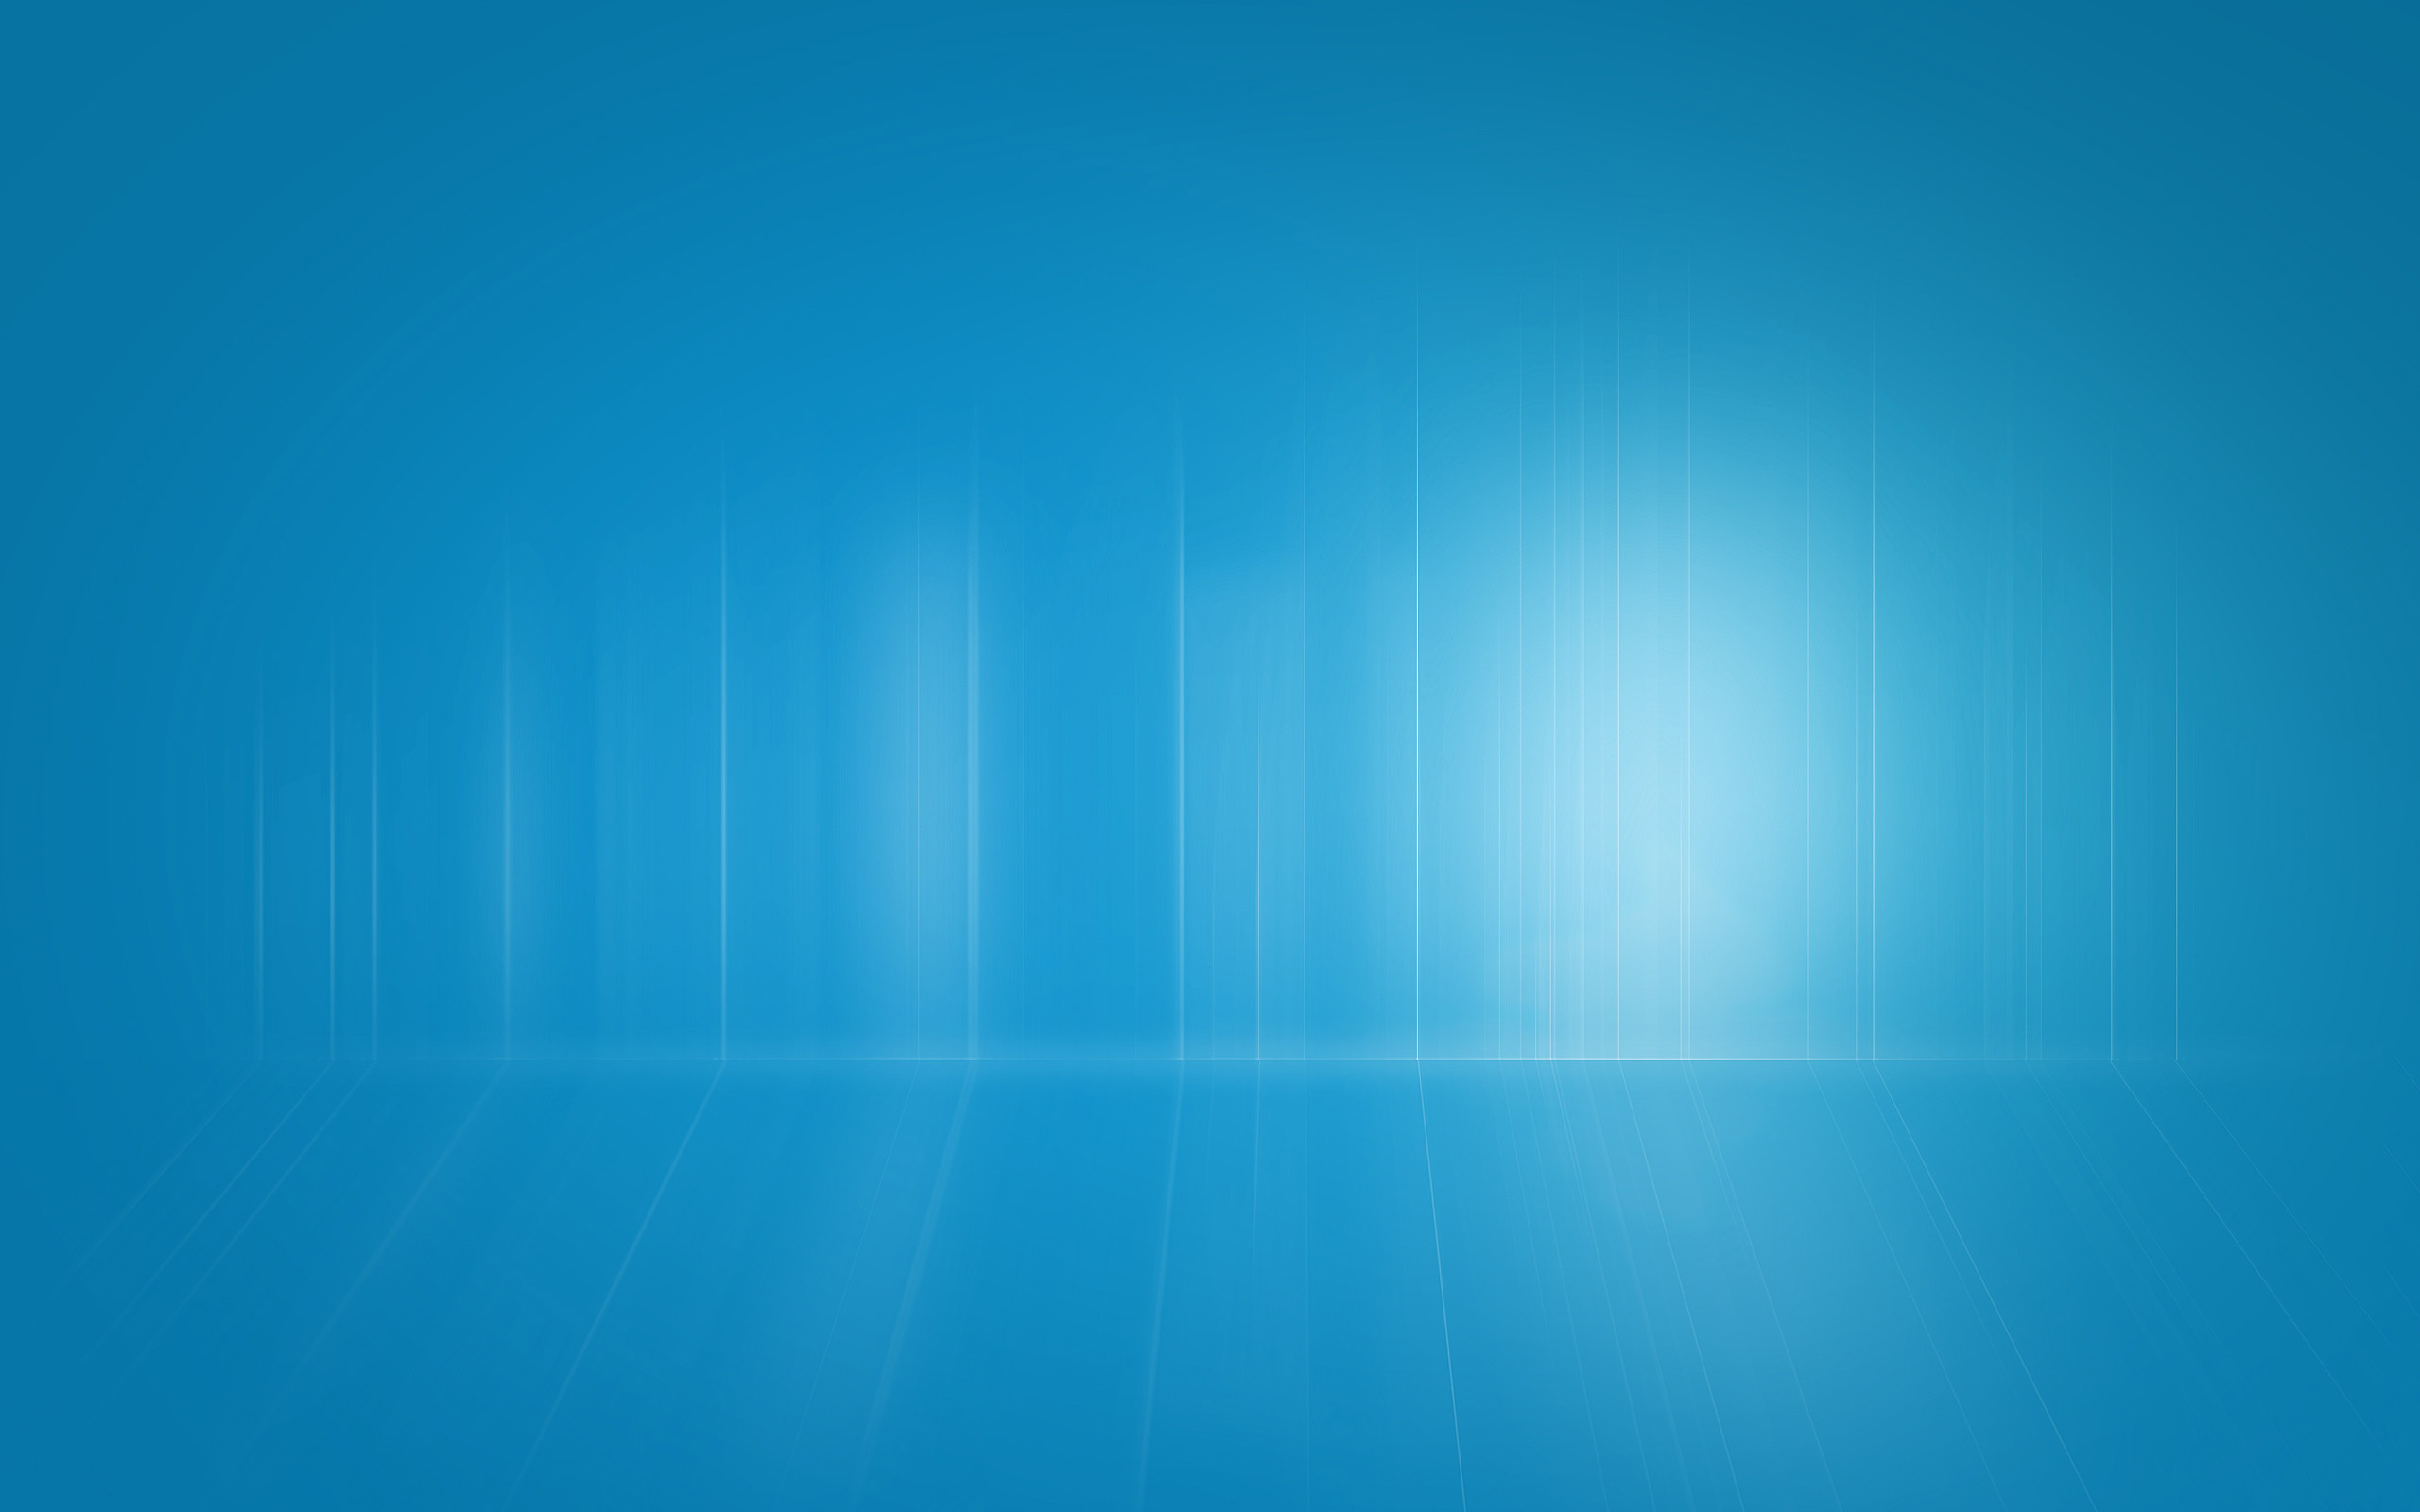 backgrounds for powerpoint animated powerpoint backgrounds animated 2560x1600